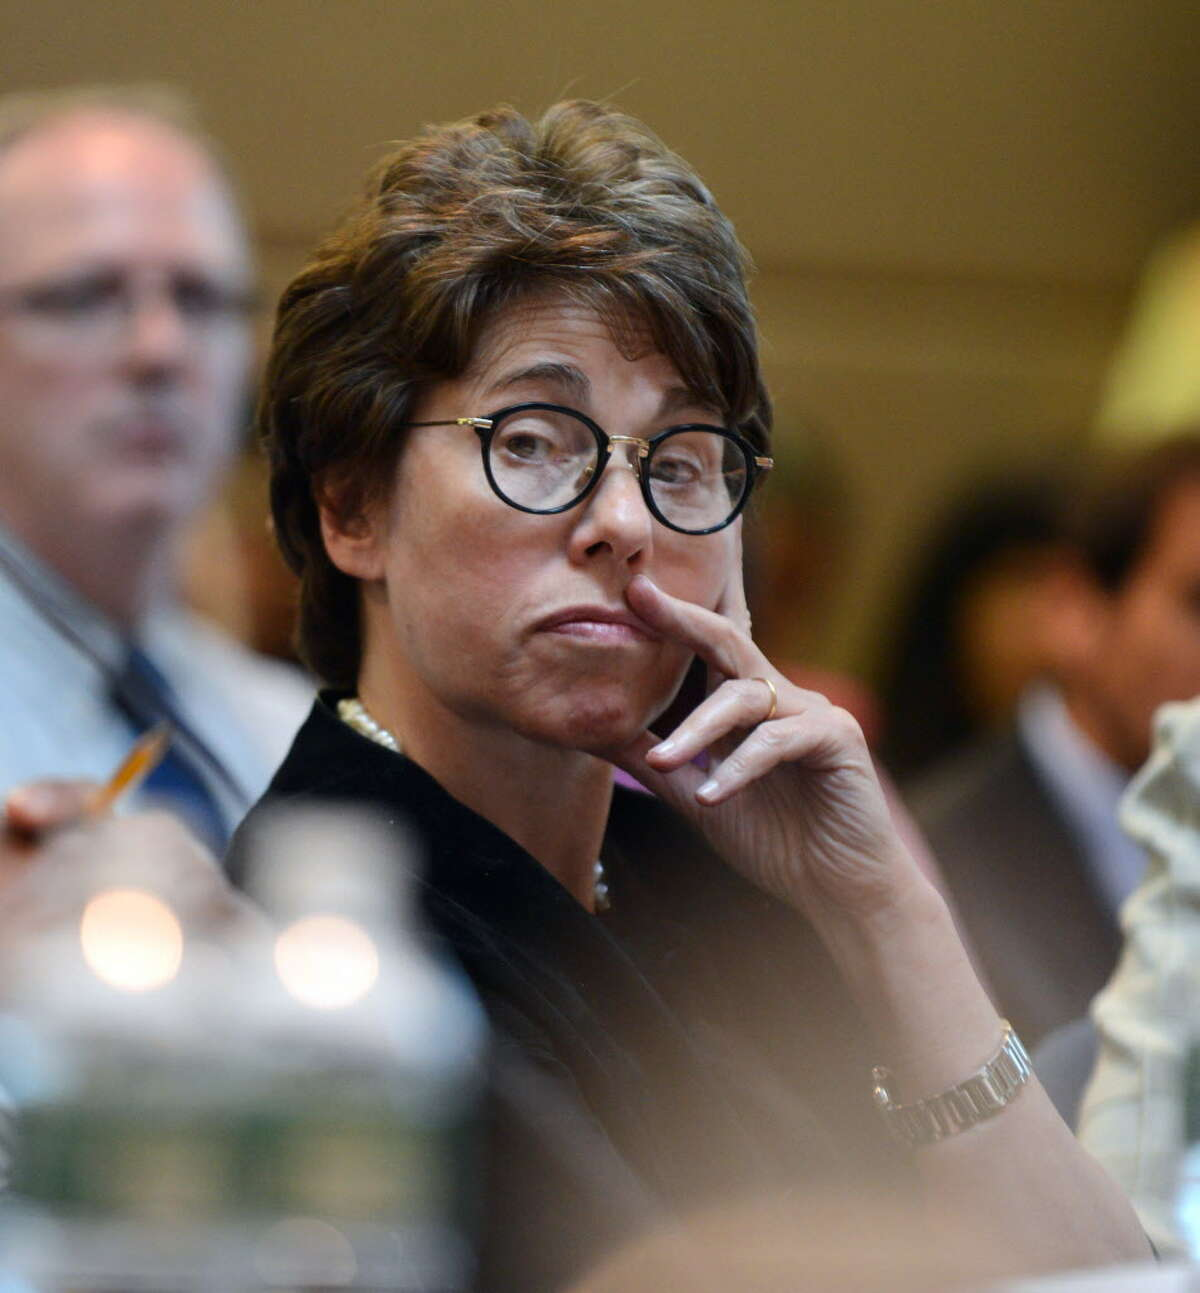 Regents Chancellor Merryl Tisch listens to comments during a Board of Regents meeting Monday afternoon, June 15, 2015, at the State Education Building in Albany, N.Y. (Will Waldron/Times Union)